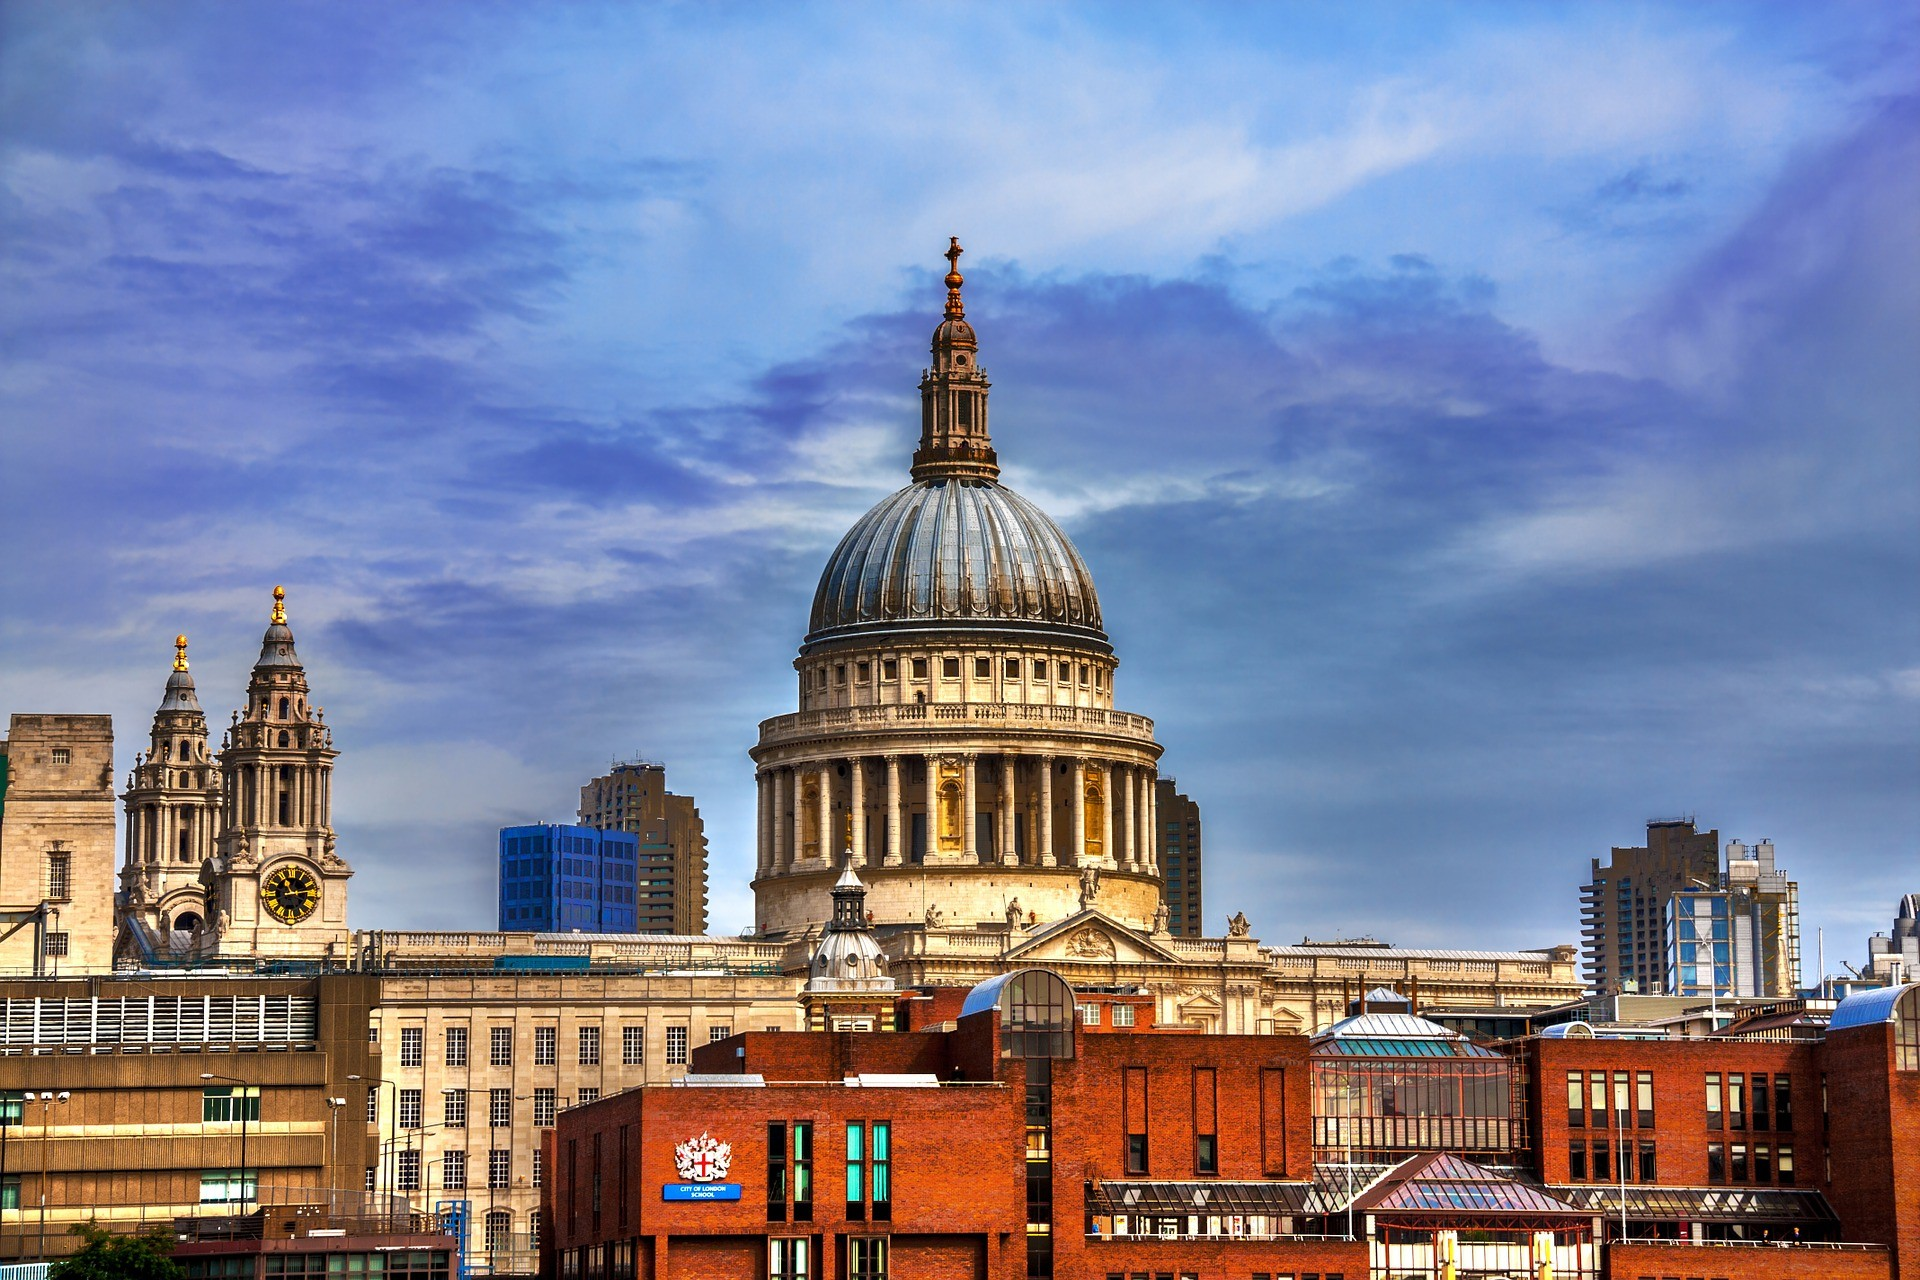 St. Paul's Cathedral, London: All year